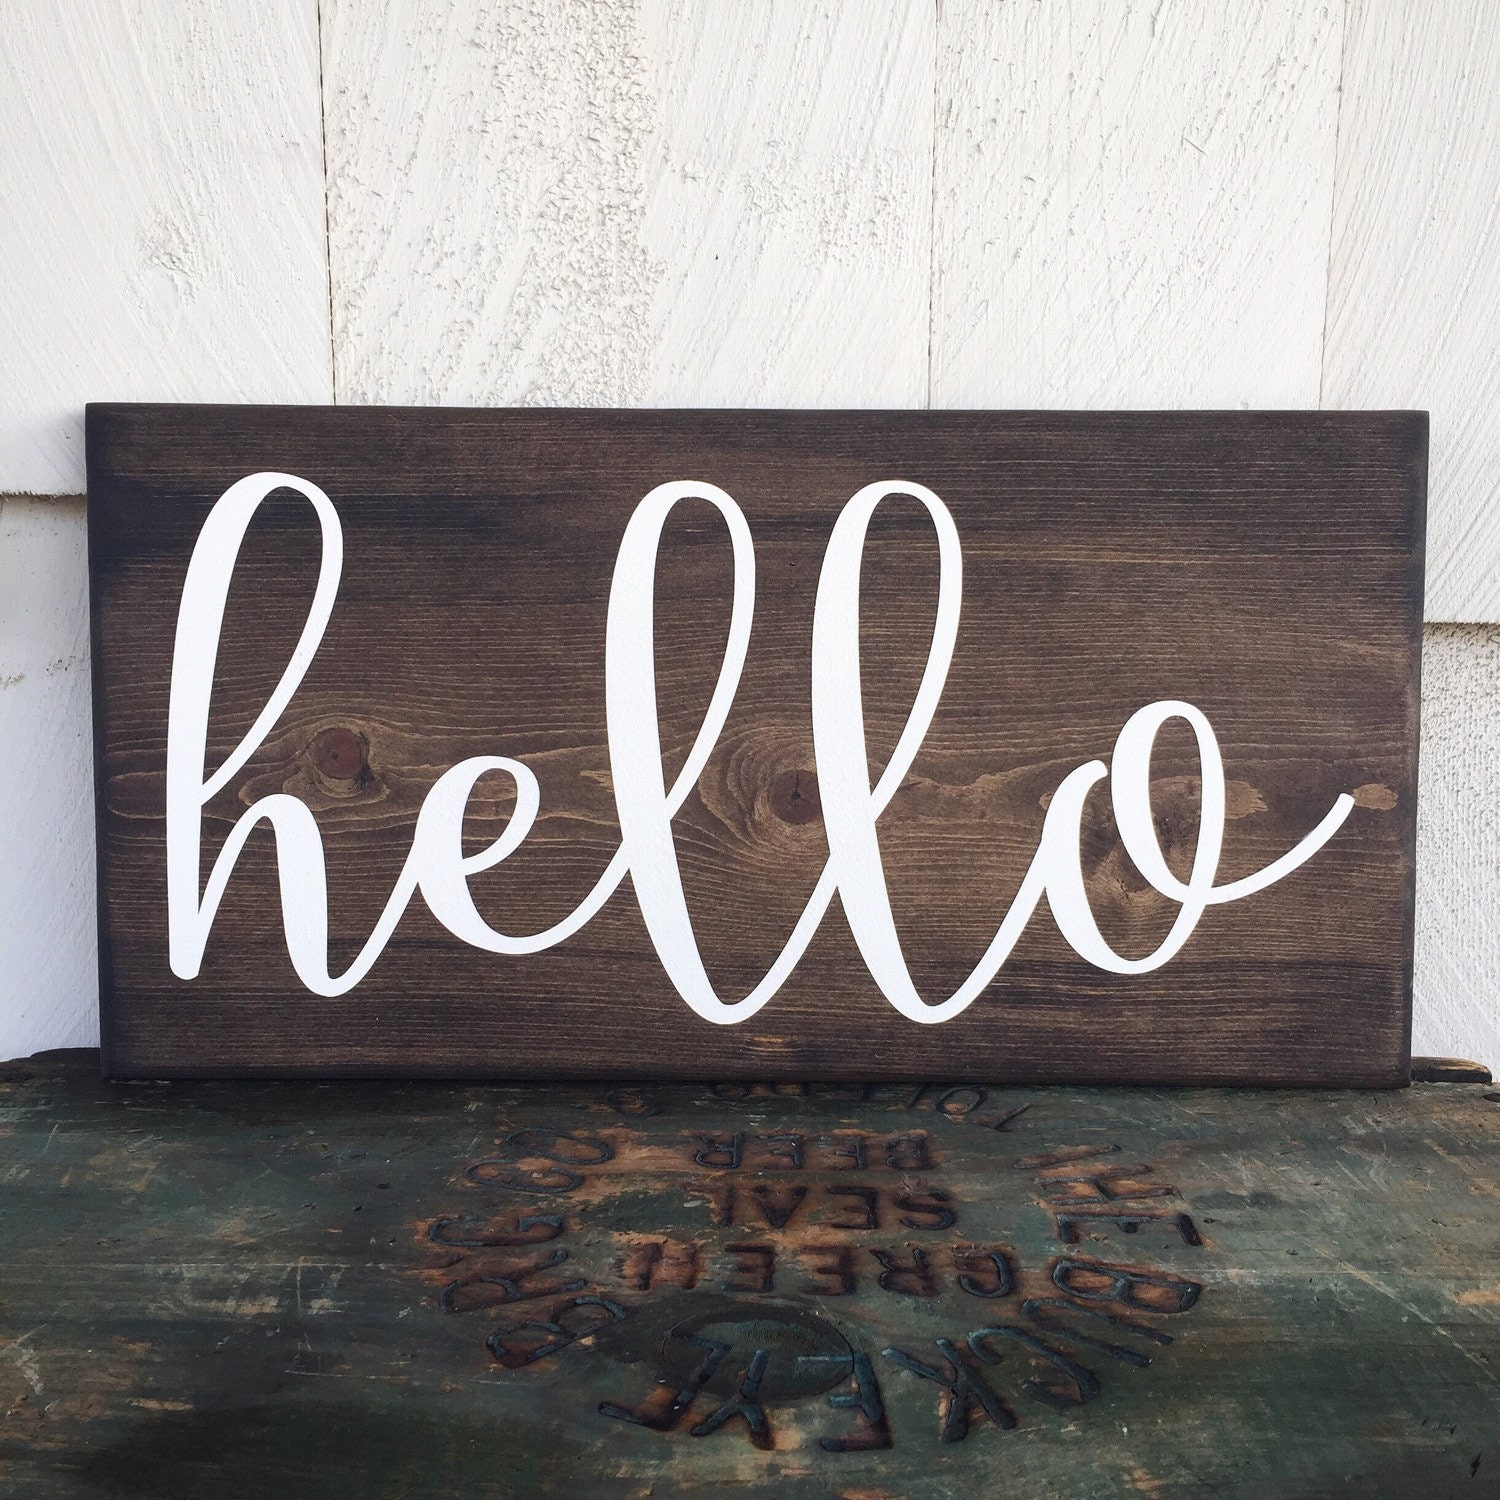 Hello Wood Sign Cursive Handwritten Font Decor Hand Painted. Organs Signs Of Stroke. 13th Zodiac Signs. Used Hotel Signs Of Stroke. Oral Thrush Signs. Pink Eye Signs. Social Networking Signs Of Stroke. Demam Signs. To Do Signs Of Stroke